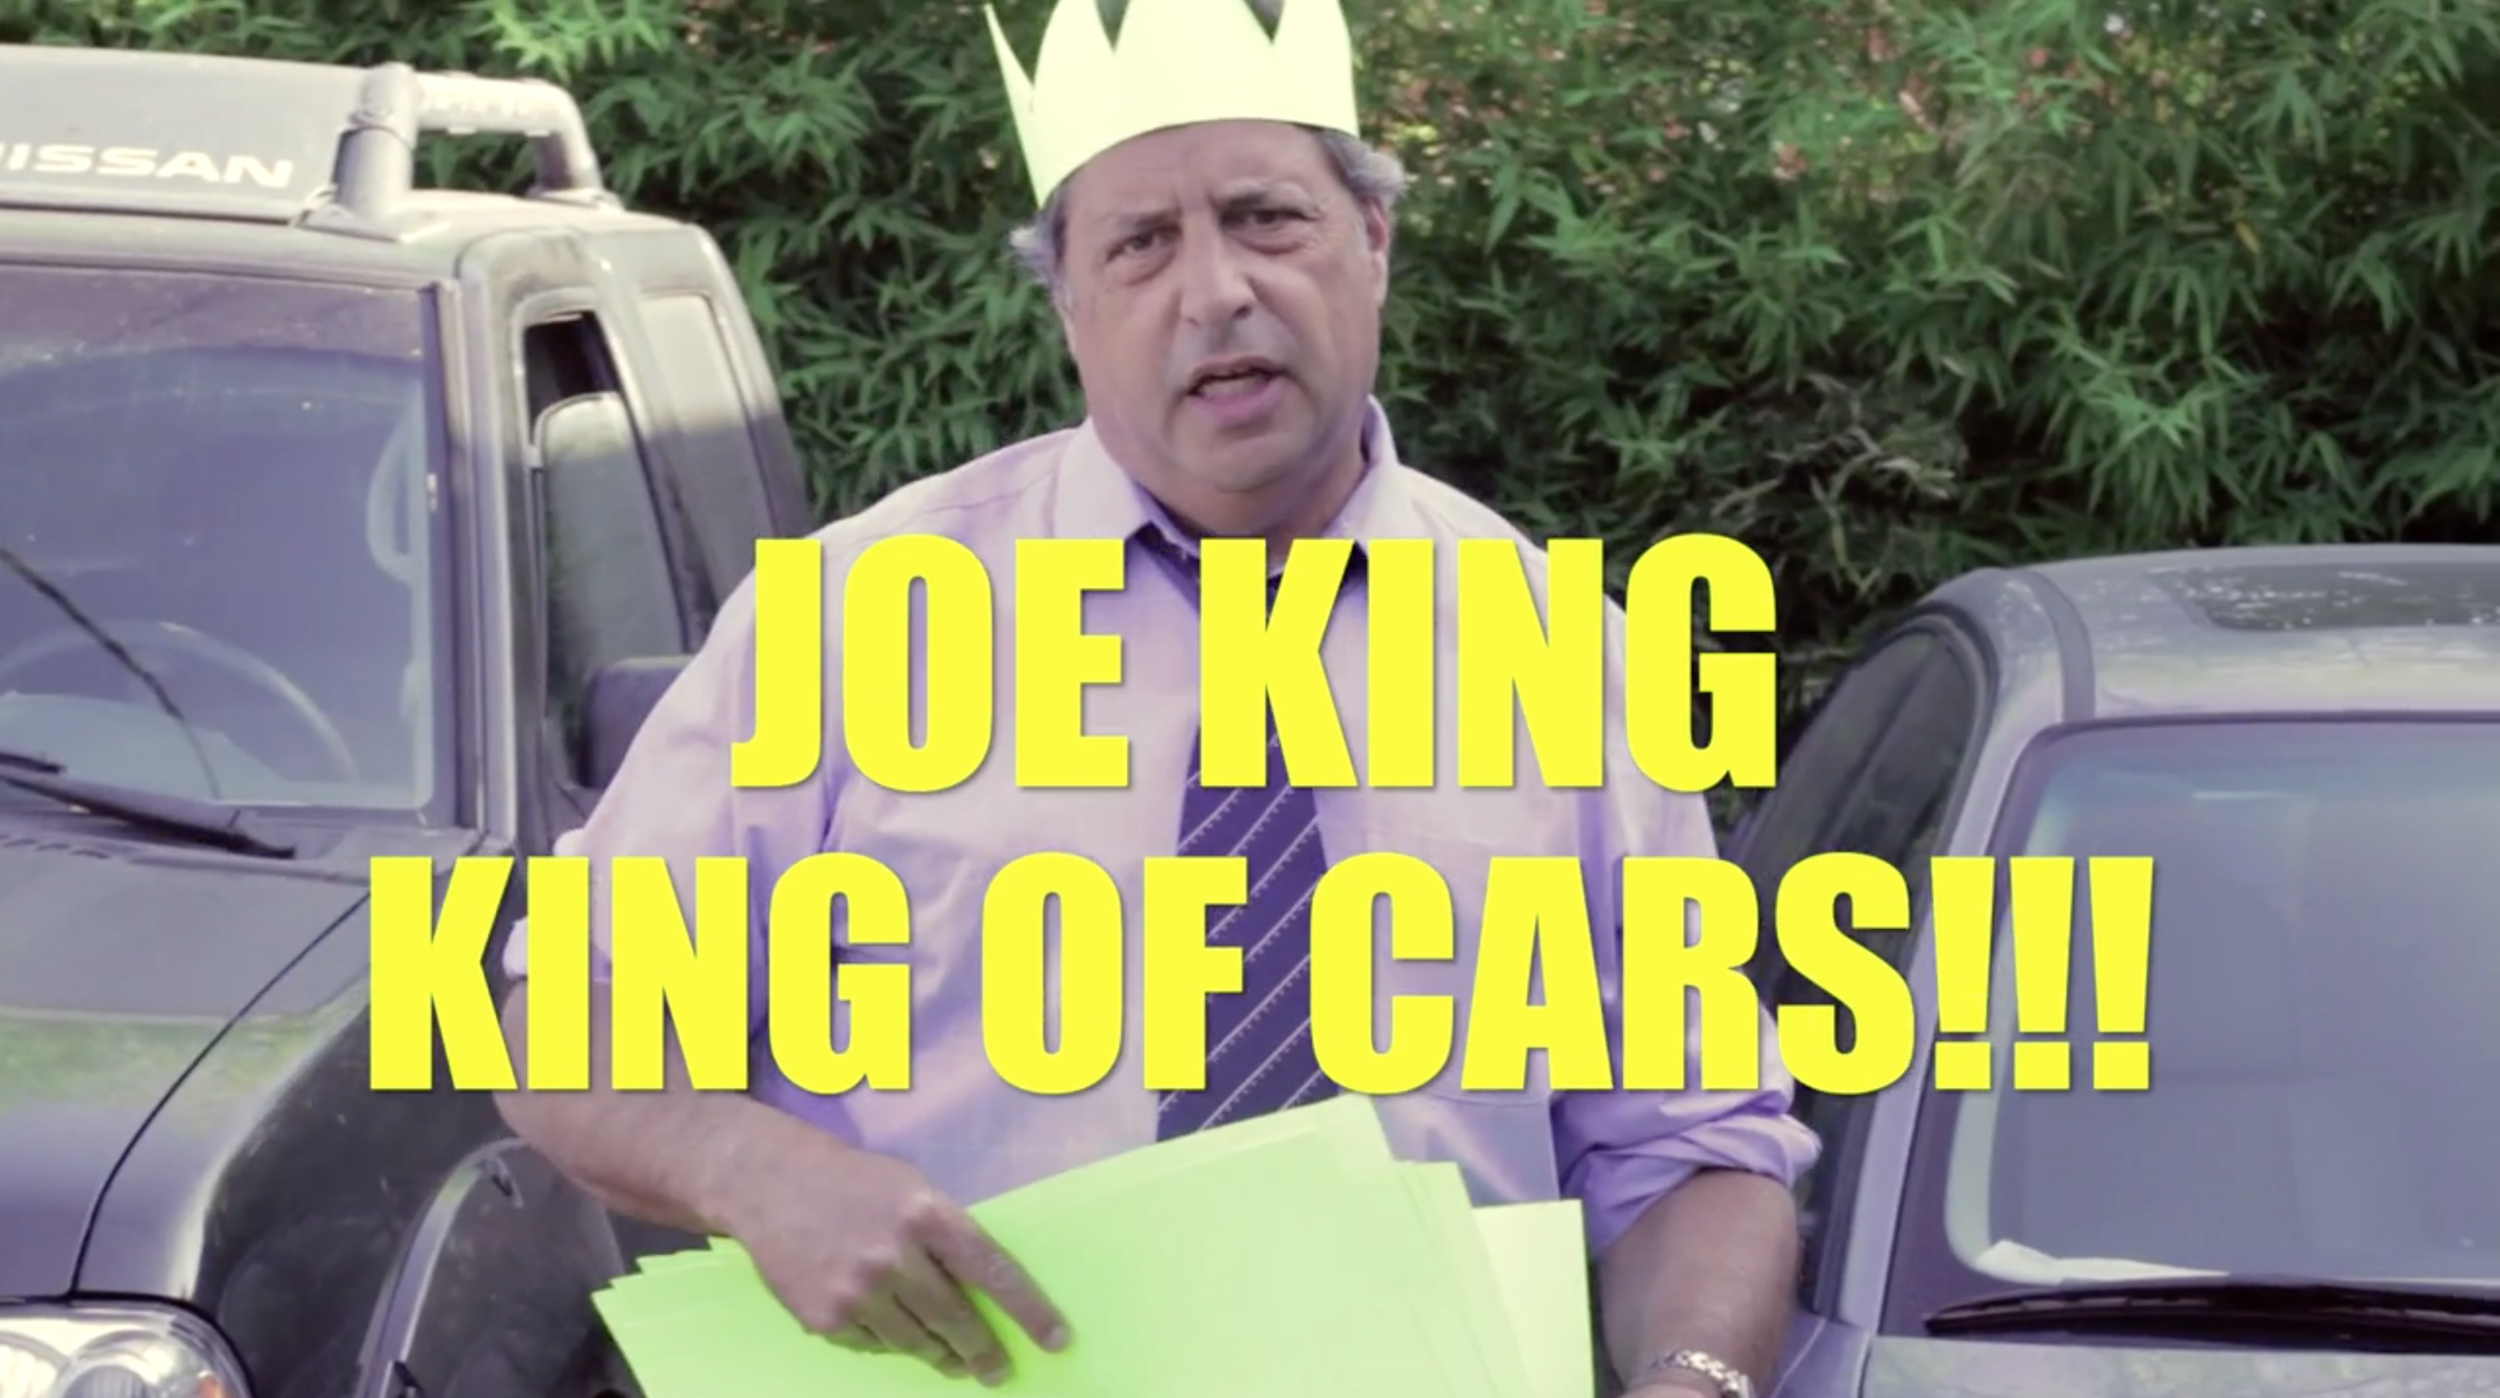 JOE KING KING OF CARS- Jon Lovitz